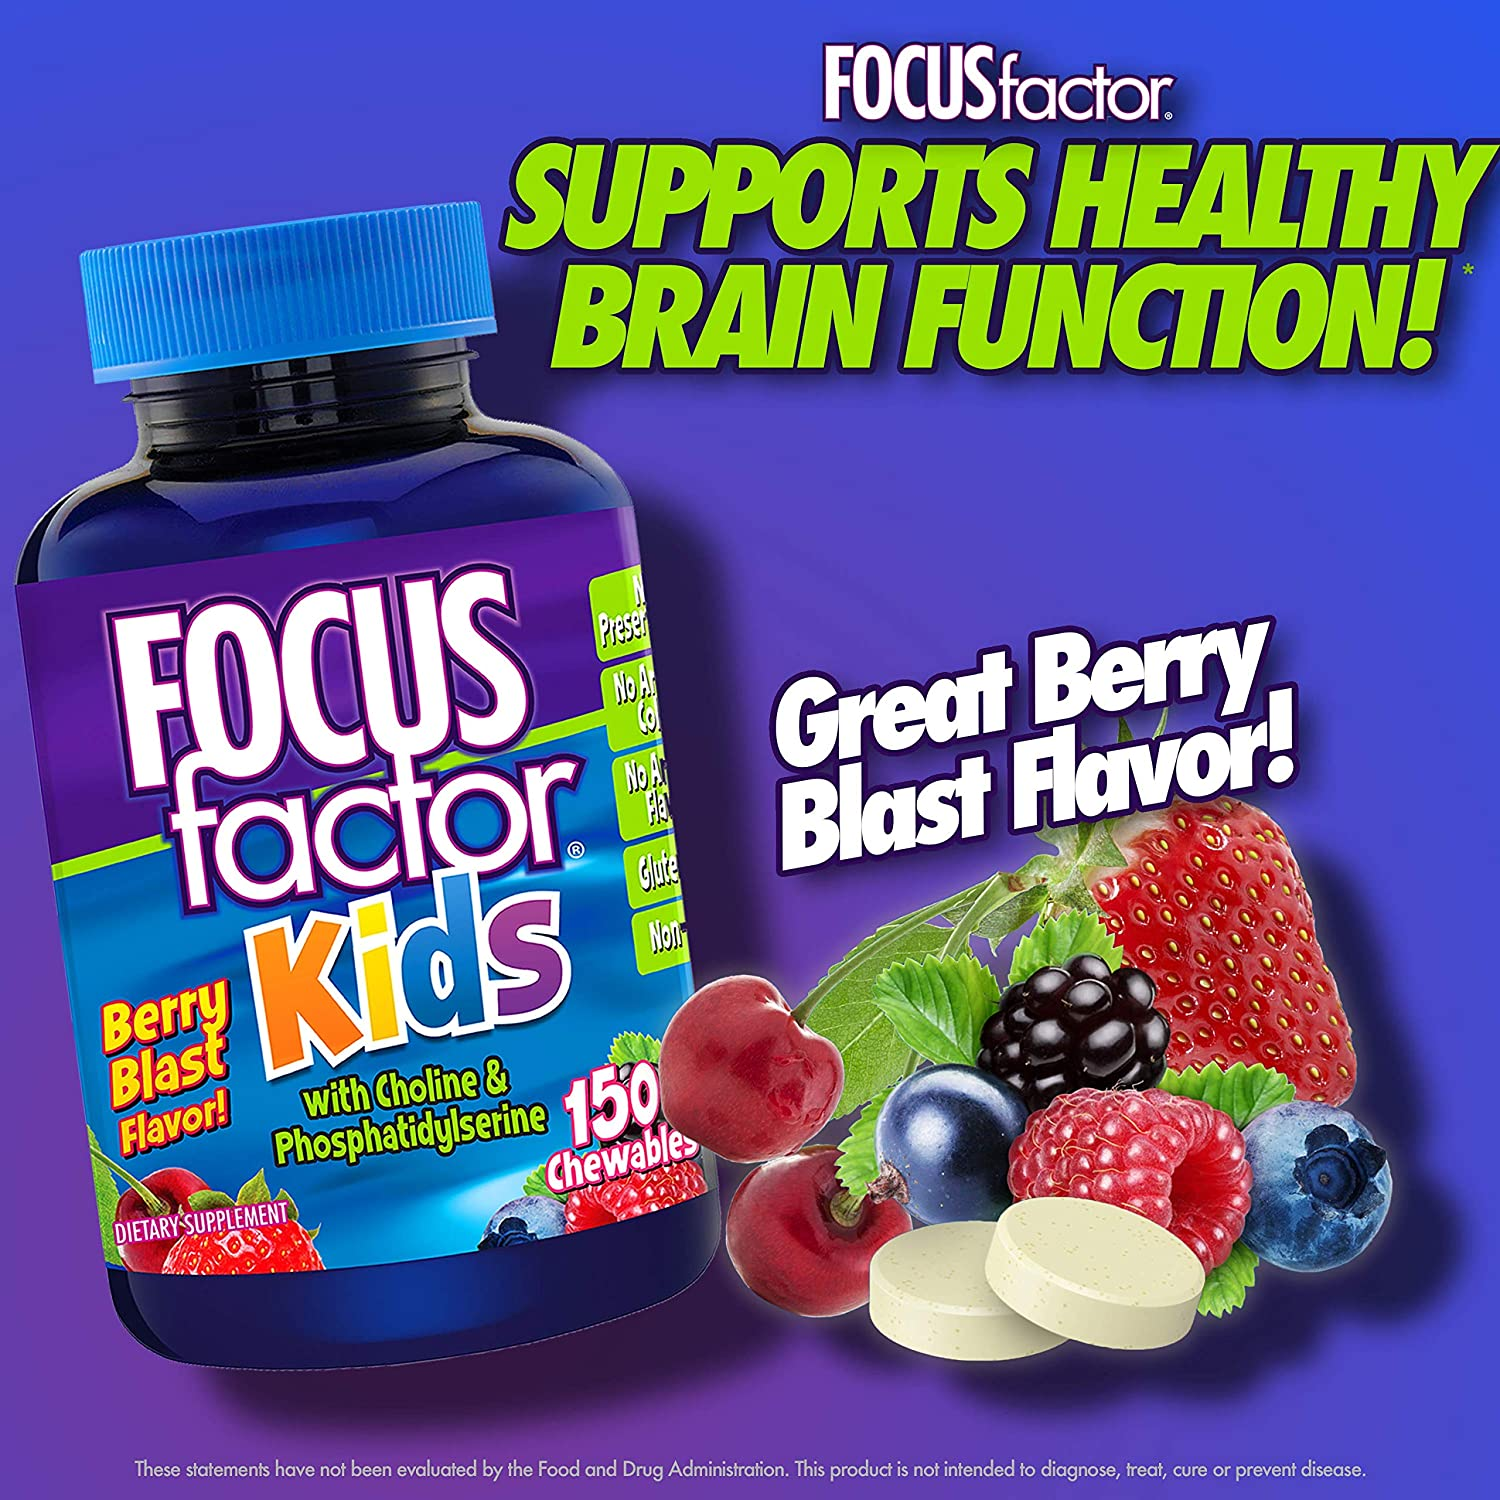 Discussion on this topic: Berries Get New Attention for Brain-Boosting Benefits, berries-get-new-attention-for-brain-boosting-benefits/